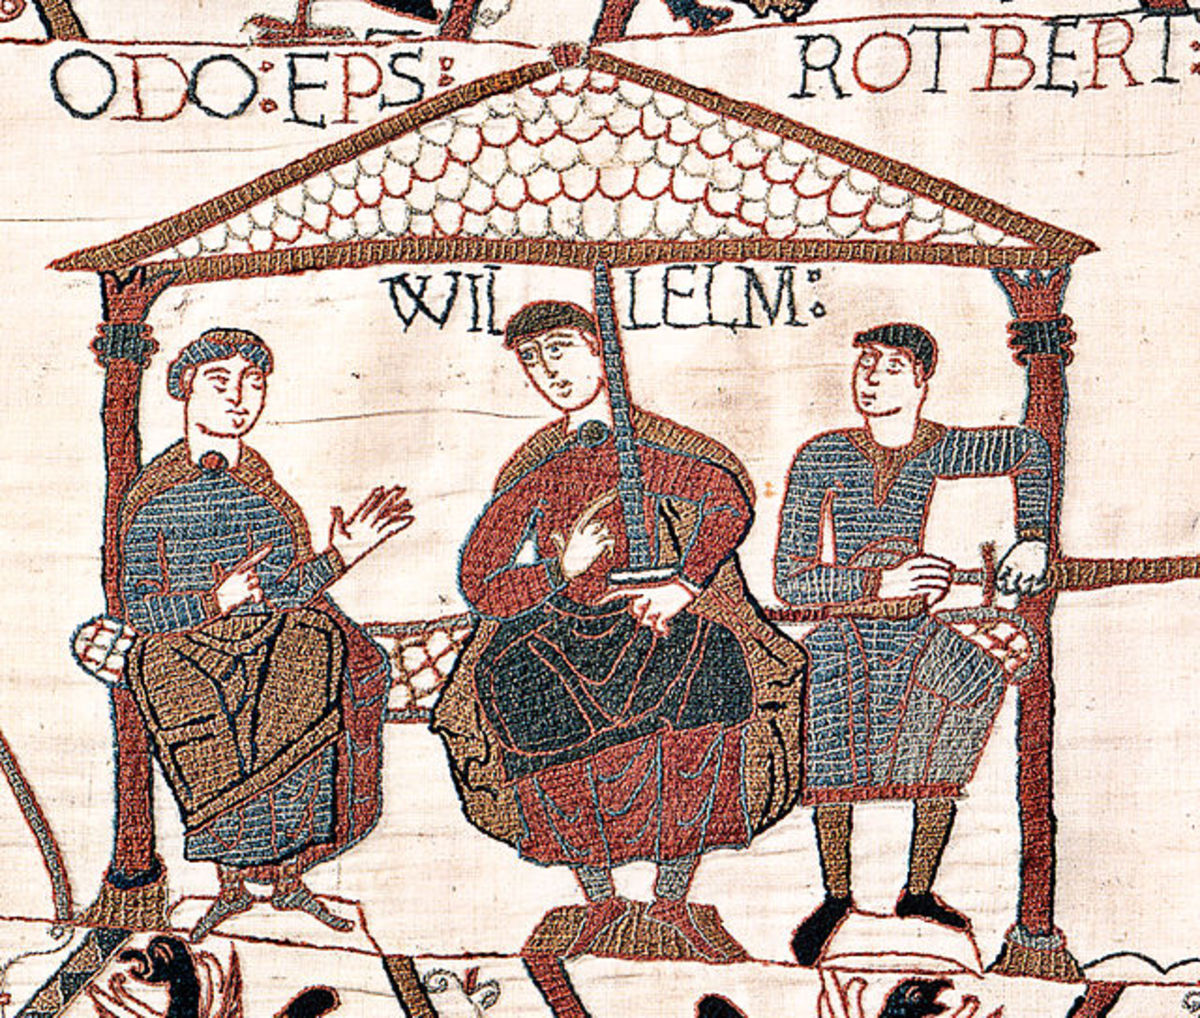 Image from the Bayeux Tapestry showing William the Conqueror (also sometimes referred to as William the Bastard) with his half-brothers. William is in the center, Odo is on the left with nothing in his hands, Robert is on the right holding a sword,